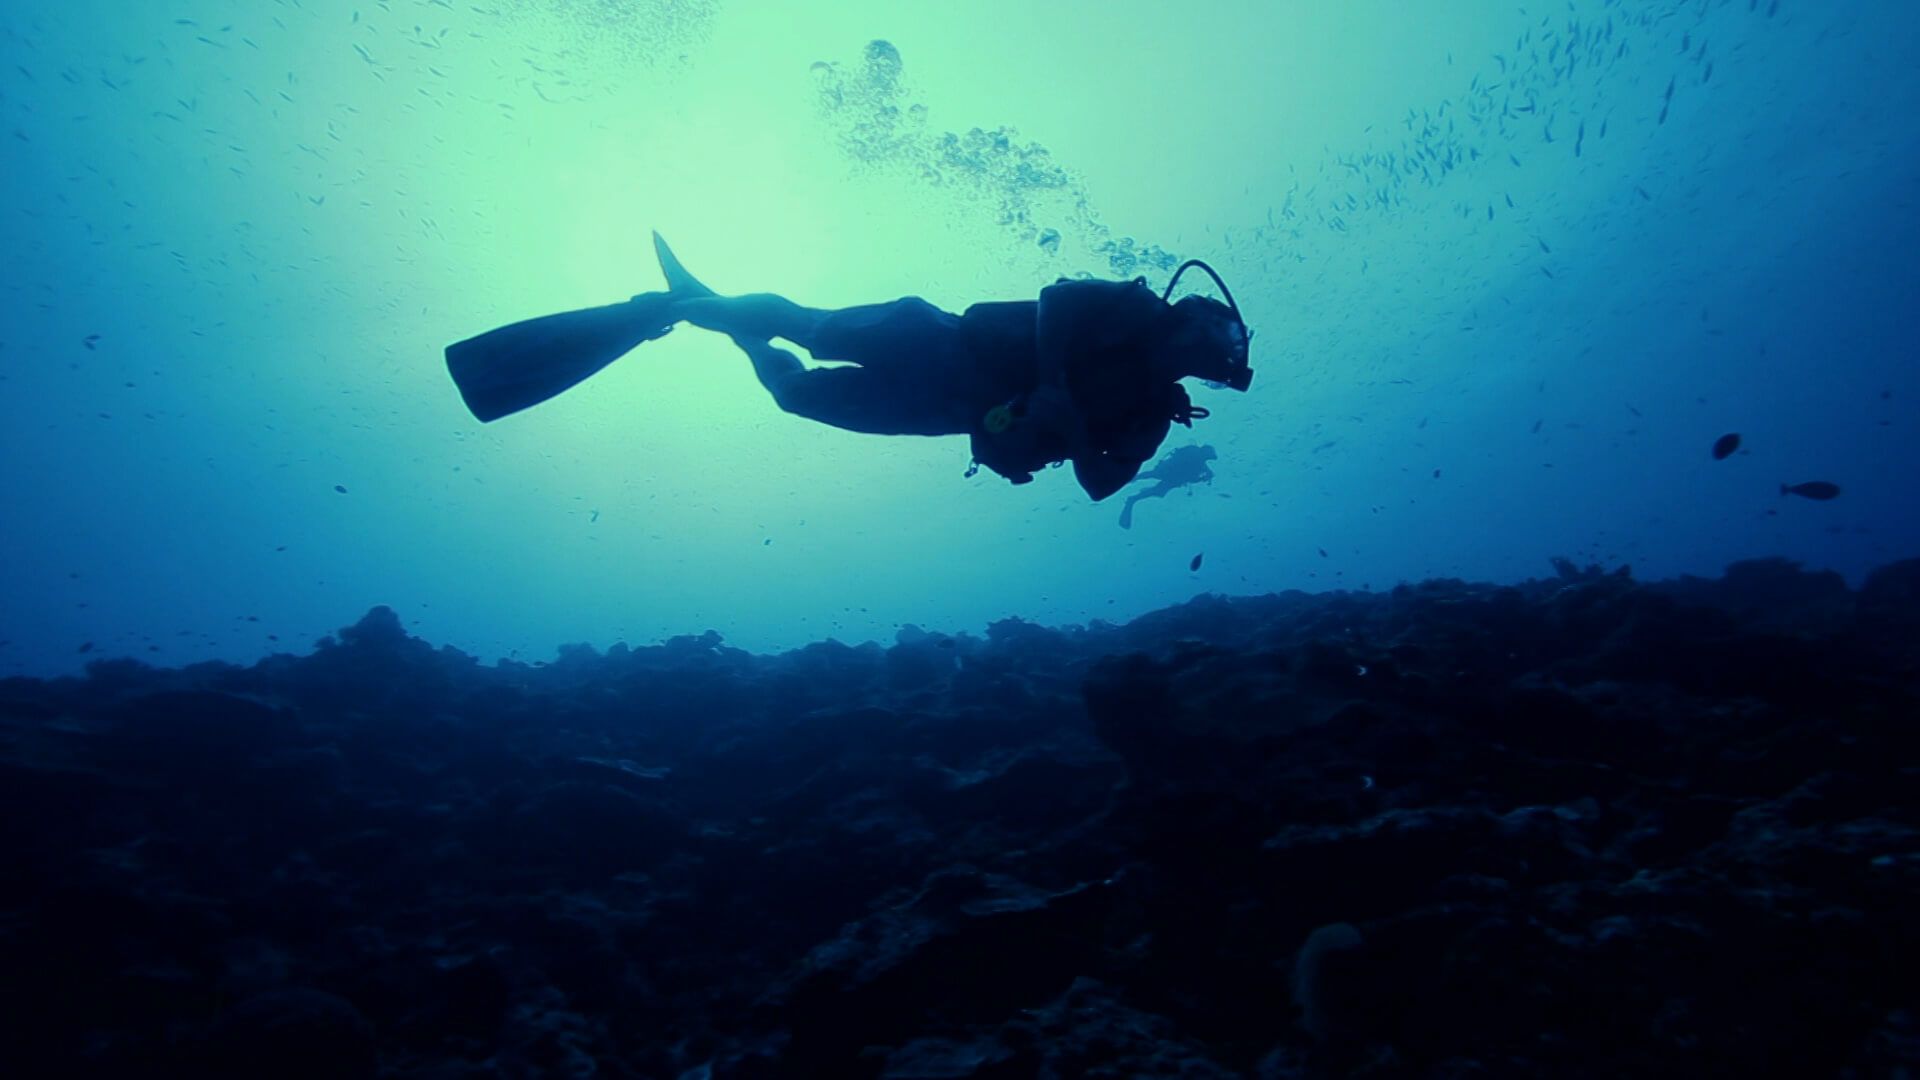 A diver in a underwater surrounding